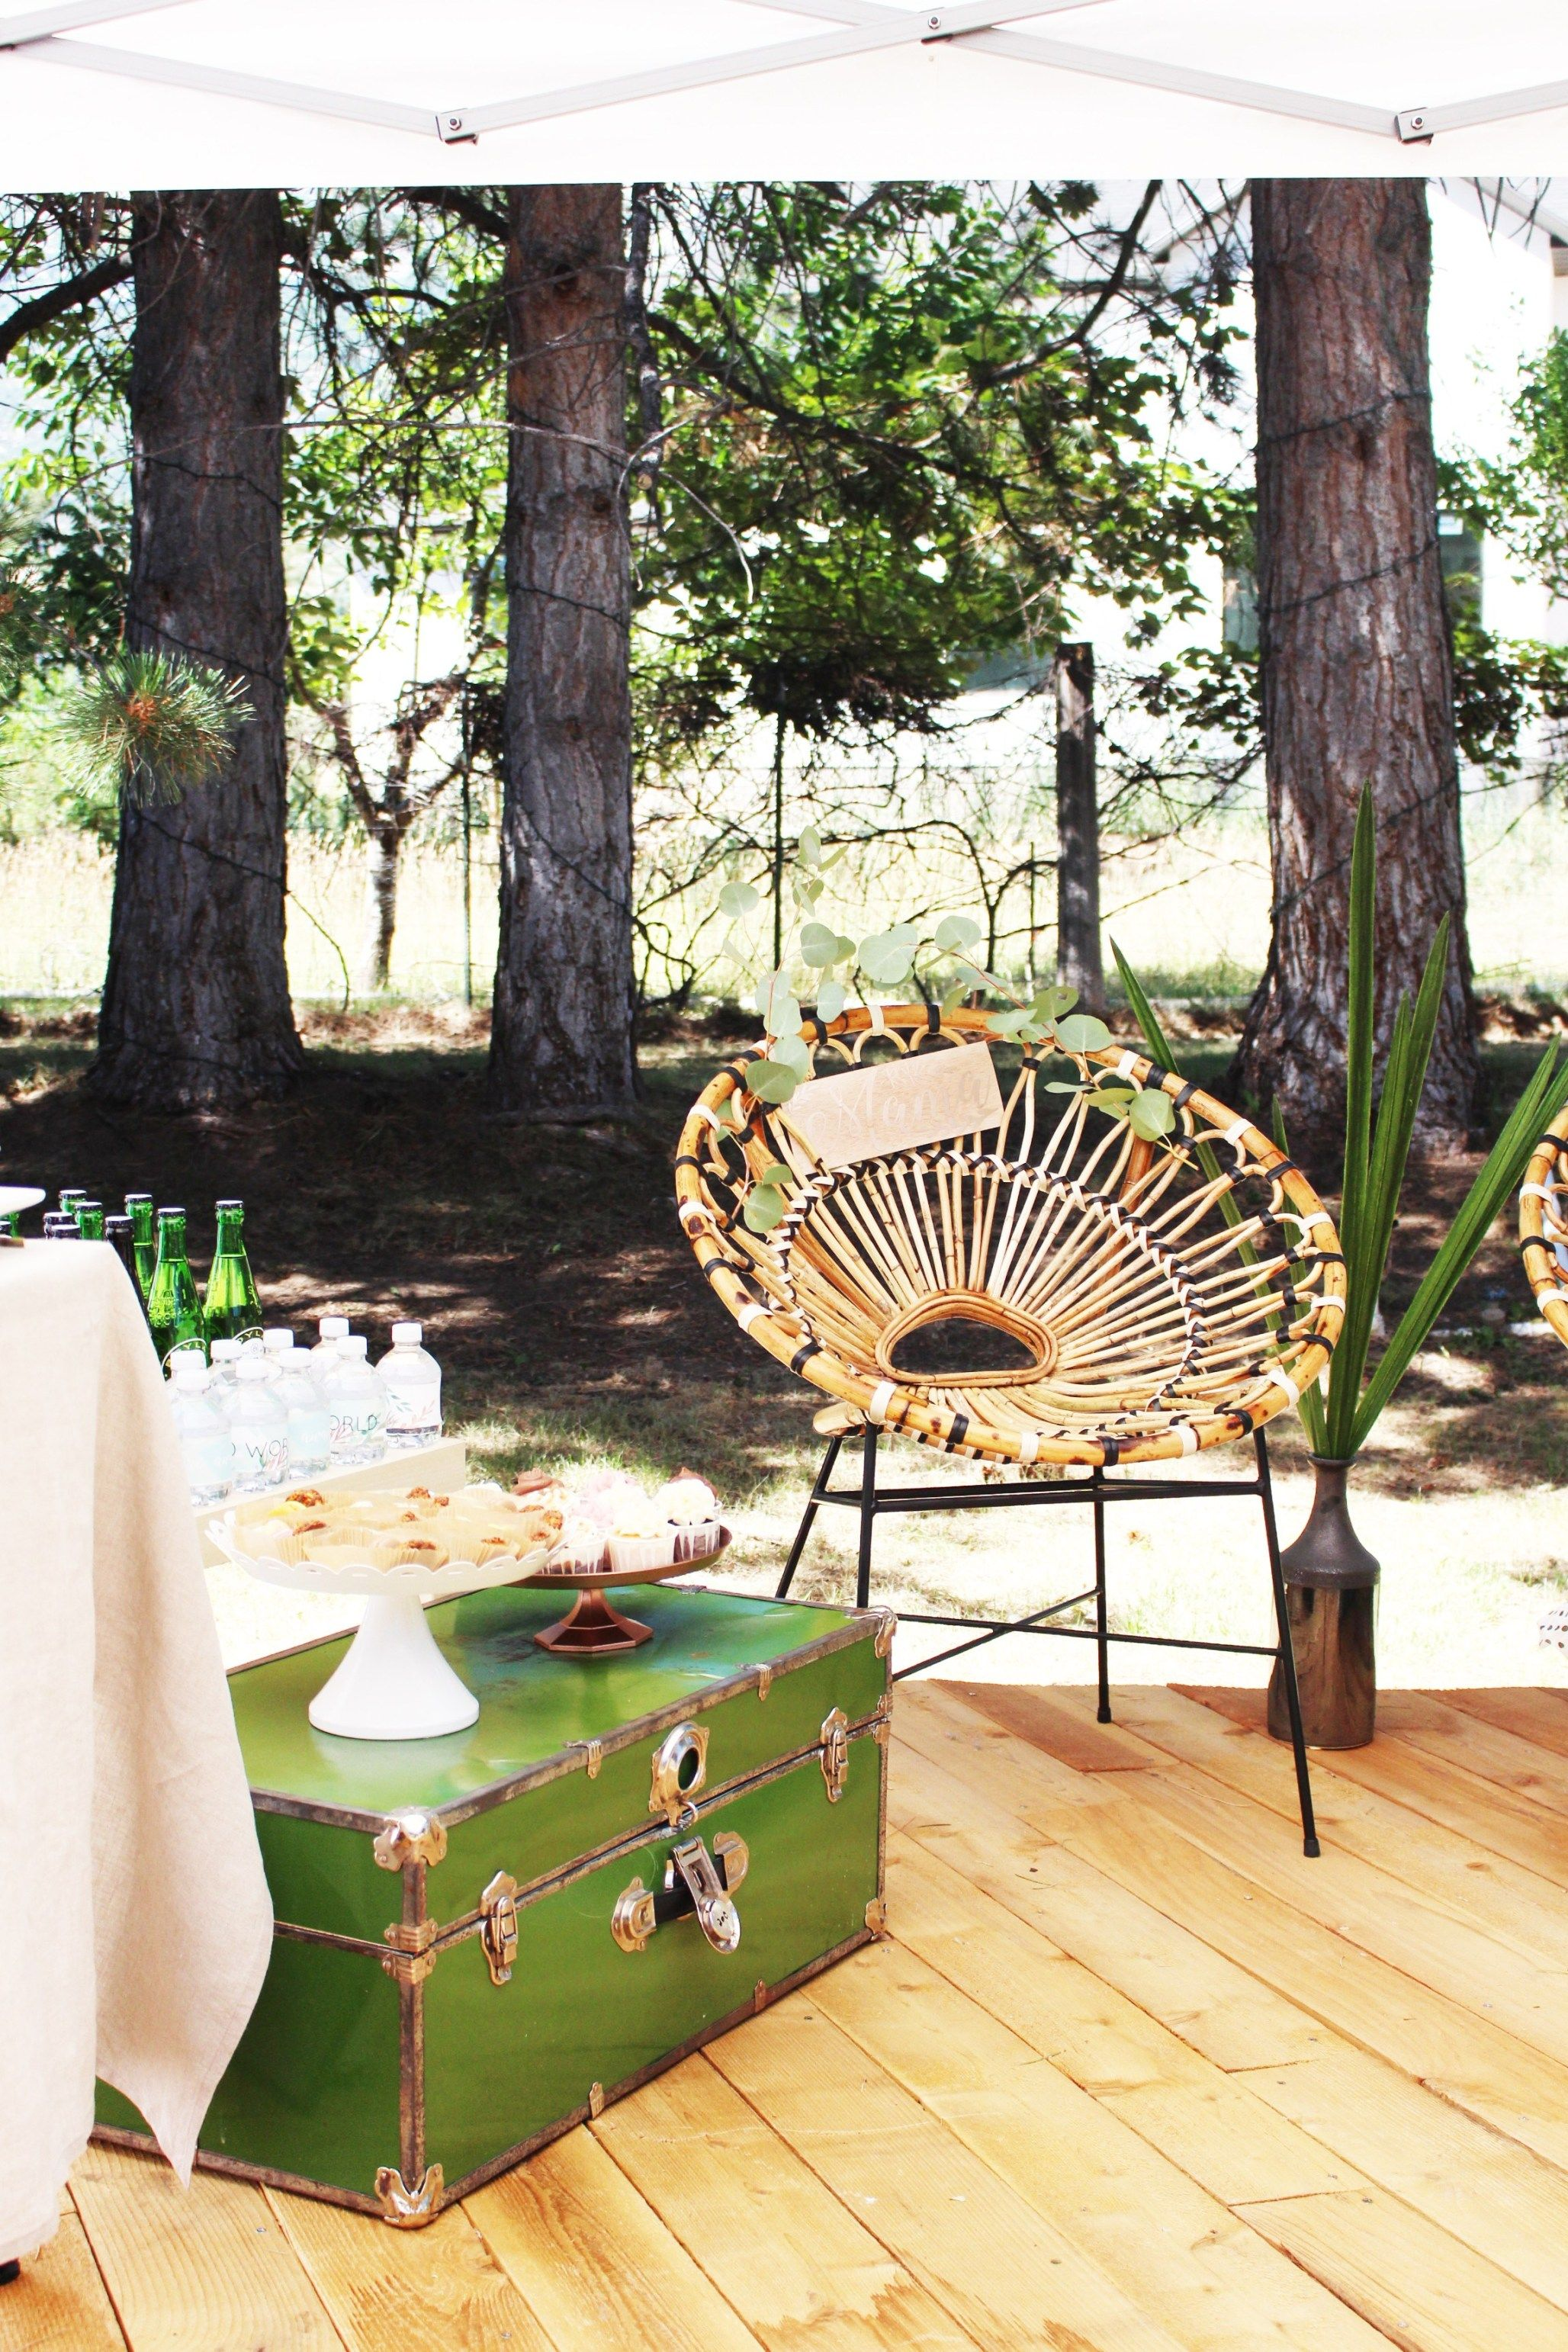 66 Best Bridal Shower Ideas - Fun Themes, Food, and ... Backyard Bridal Shower Gift Ideas on outdoor shower ideas backyard, bbq ideas backyard, party ideas backyard, diy backyard, sports ideas backyard,